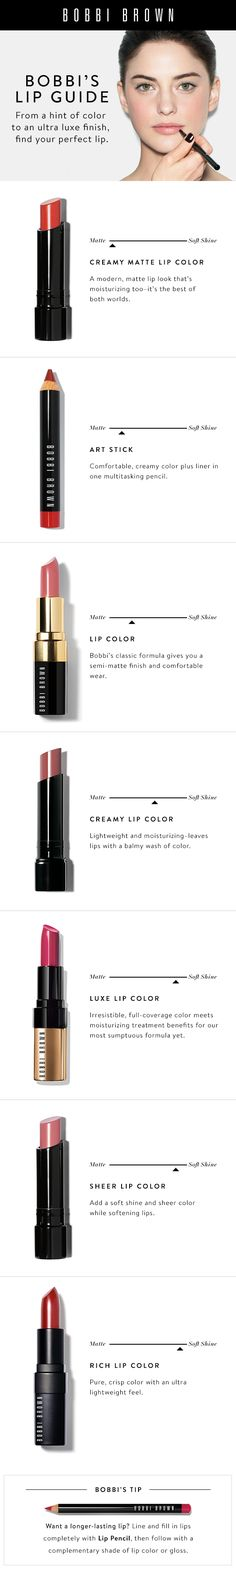 It's Bobbi's Lip Color Guide. Brows Bobbi Brown Makeup, perfect makeup and beauty collection Blue Lipstick, Pink Lips, Bobbi Brown Lipstick, Pink Makeup, Eye Makeup, Hair Makeup, Beauty Make-up, Beauty Tips, Natural Beauty